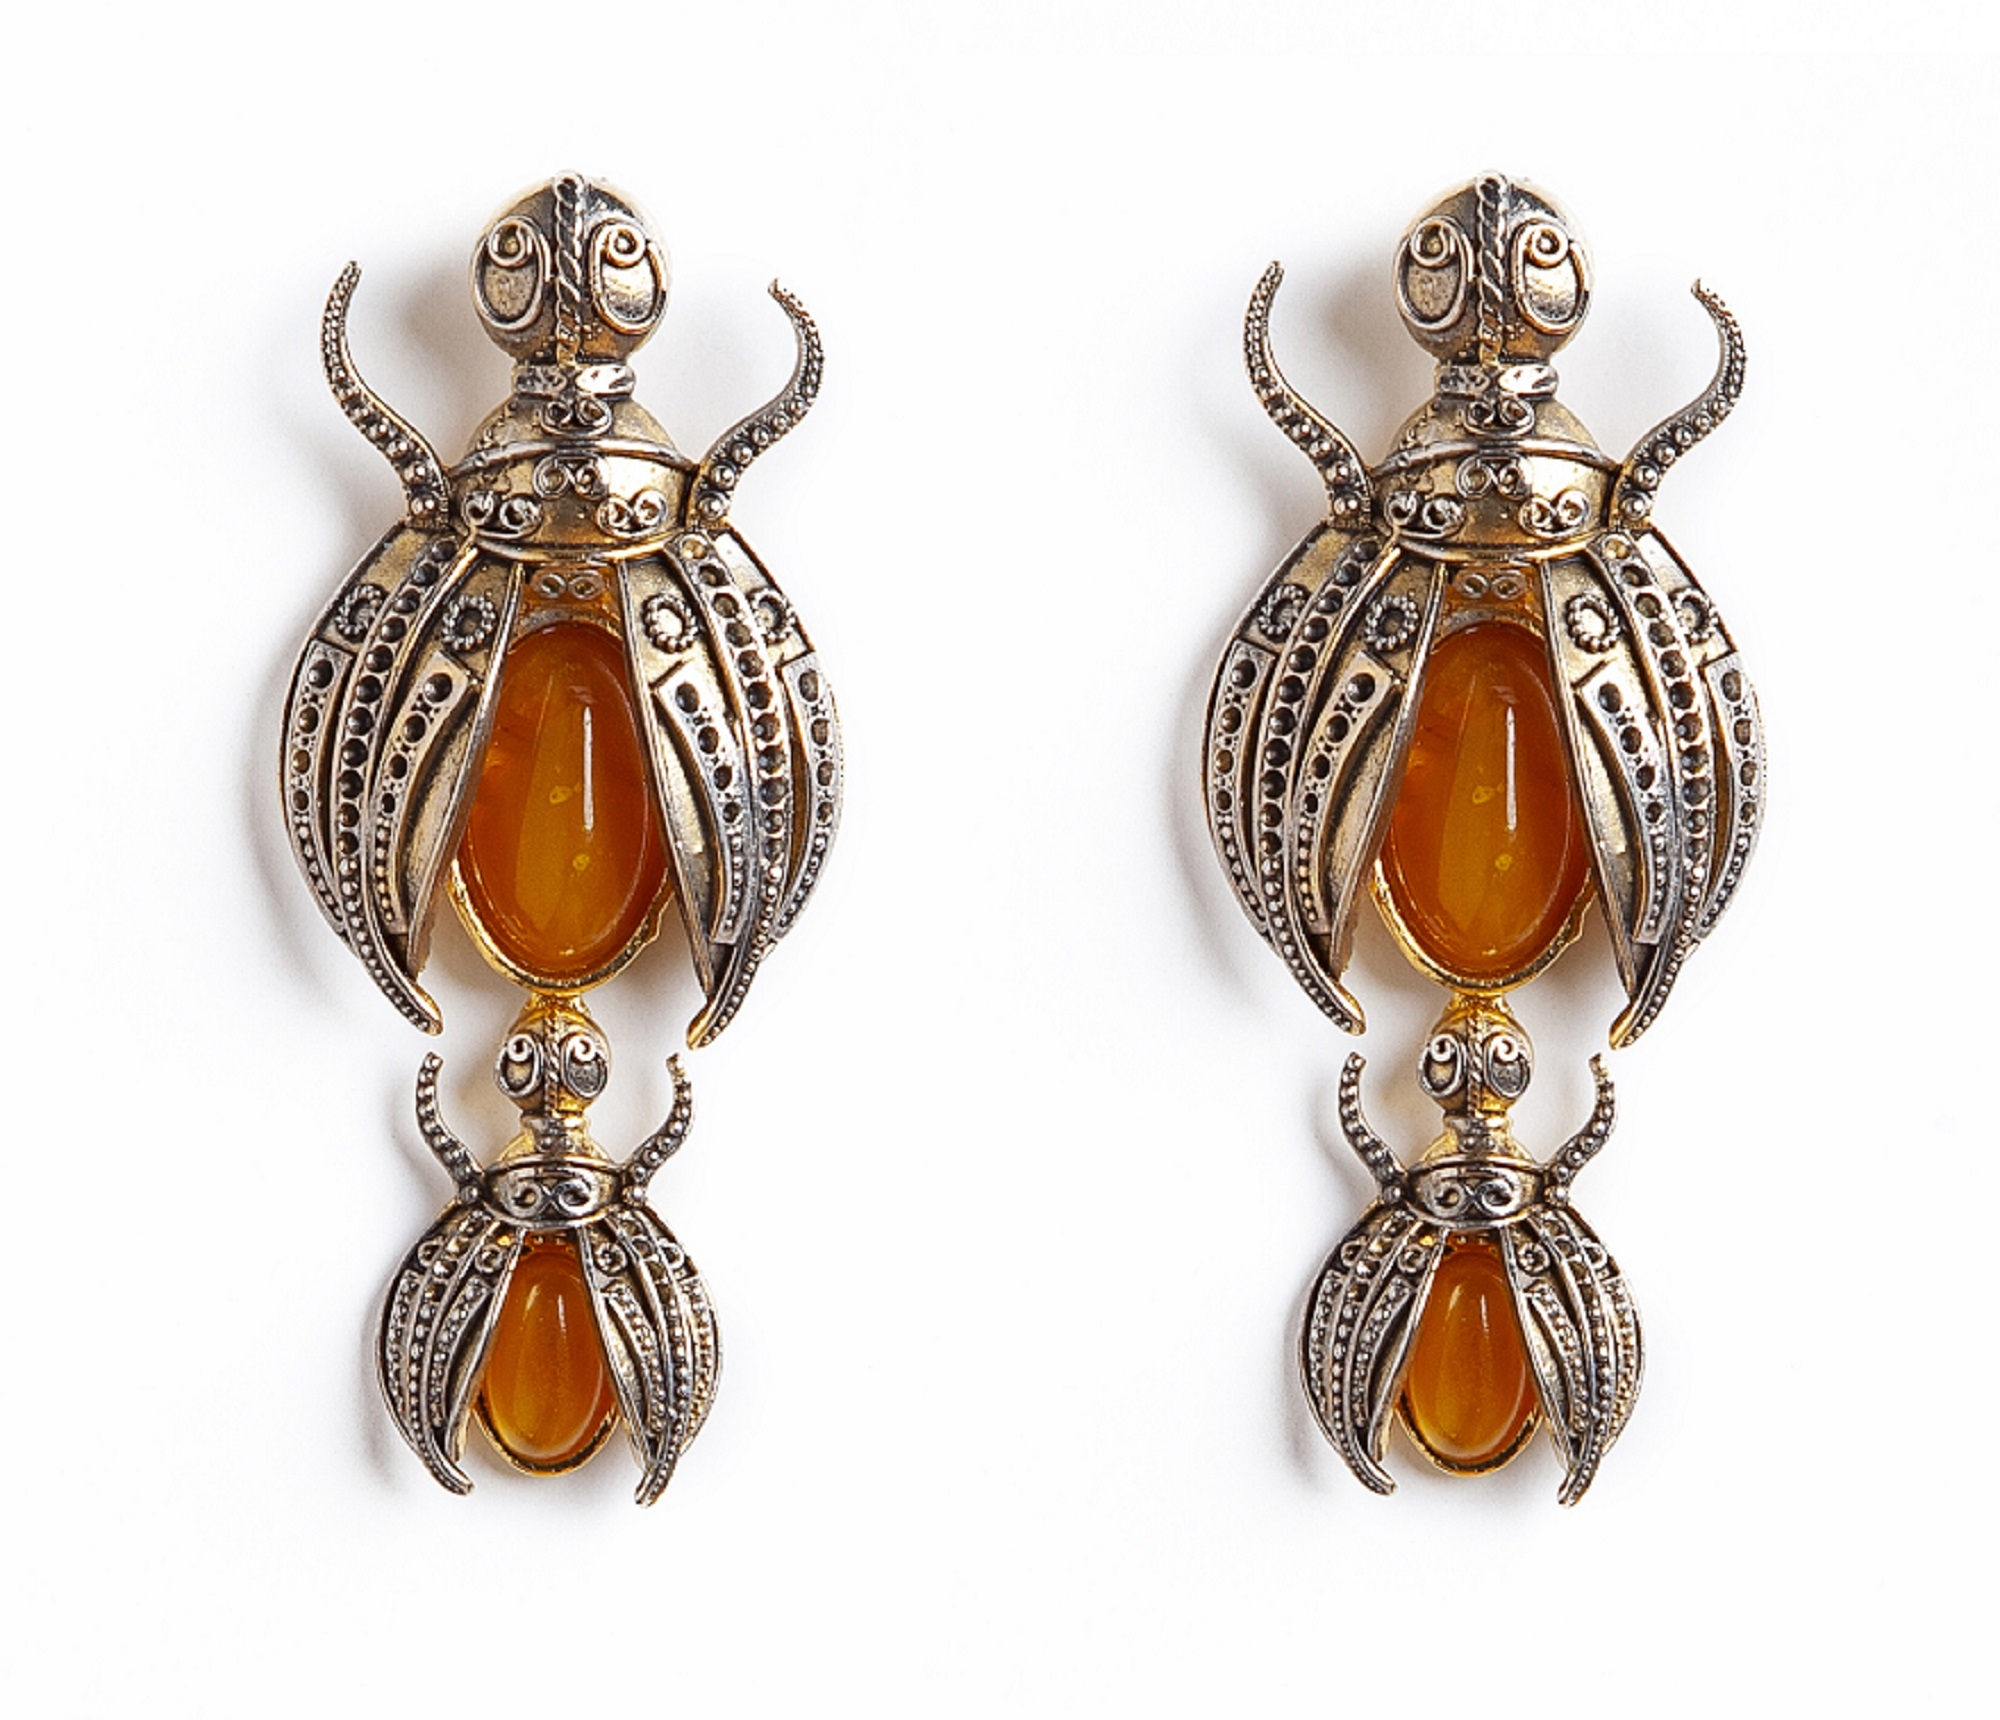 Scarab Luxury Earrings (Clip) by Sonia Petroff on curated-crowd.com